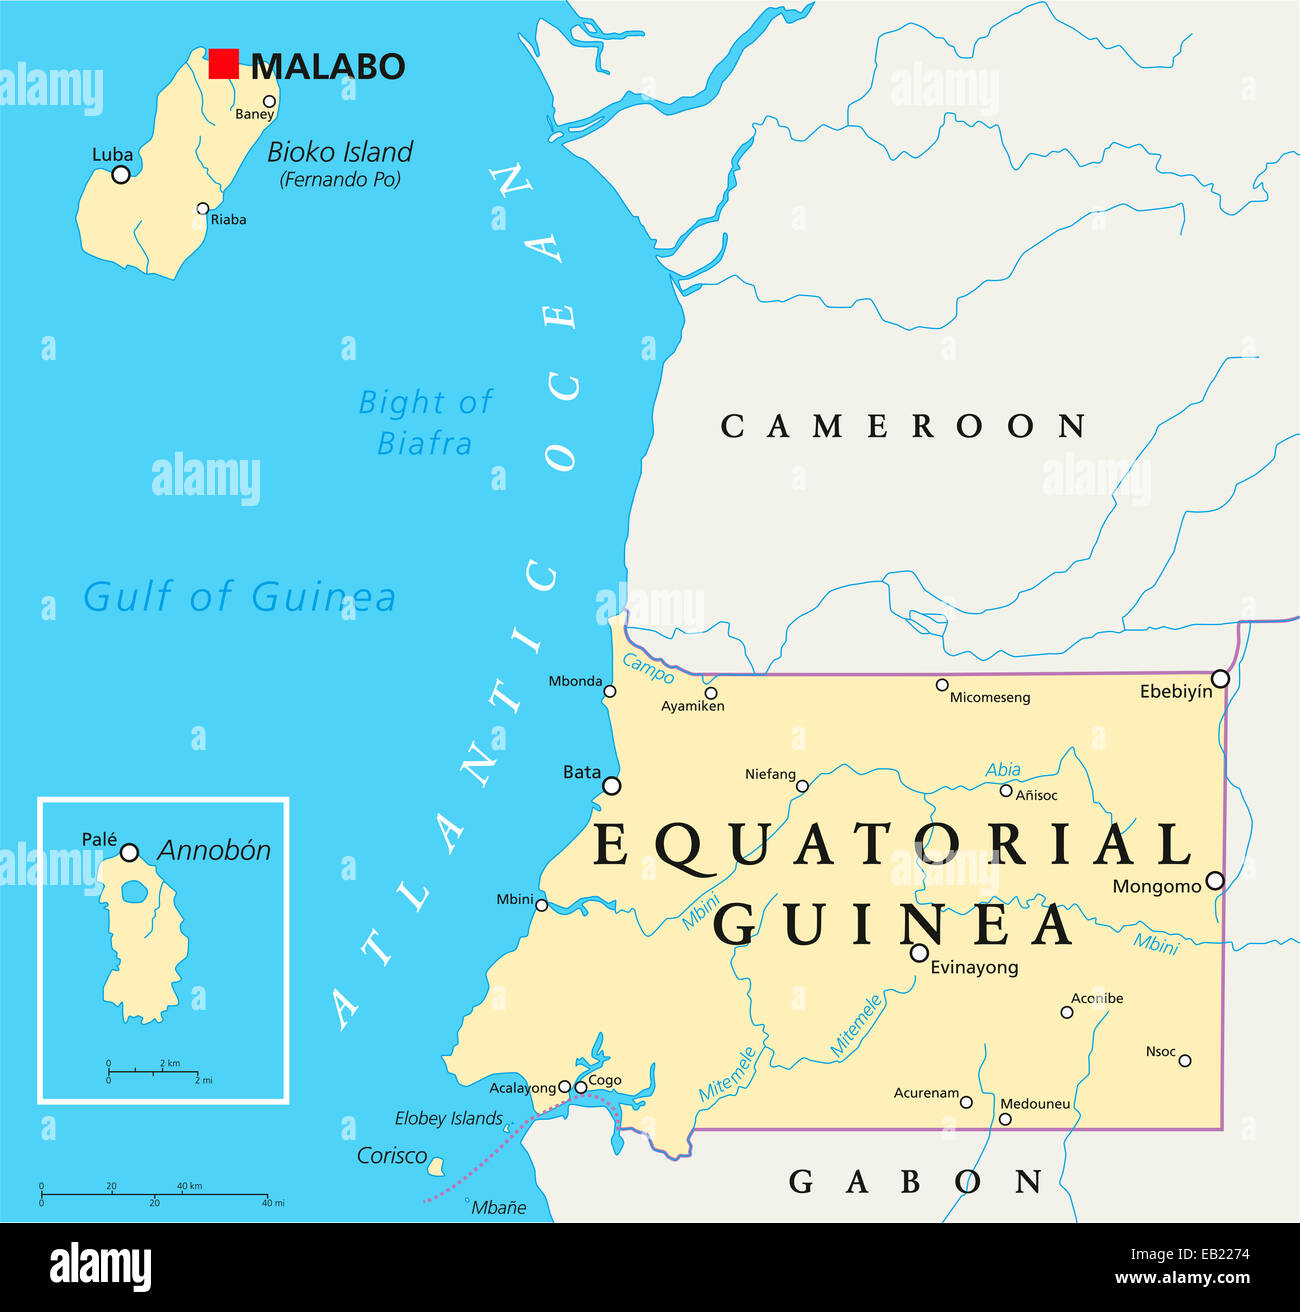 Equatorial guinea political map with capital malabo national stock equatorial guinea political map with capital malabo national borders important cities and rivers english labeling and scaling gumiabroncs Choice Image